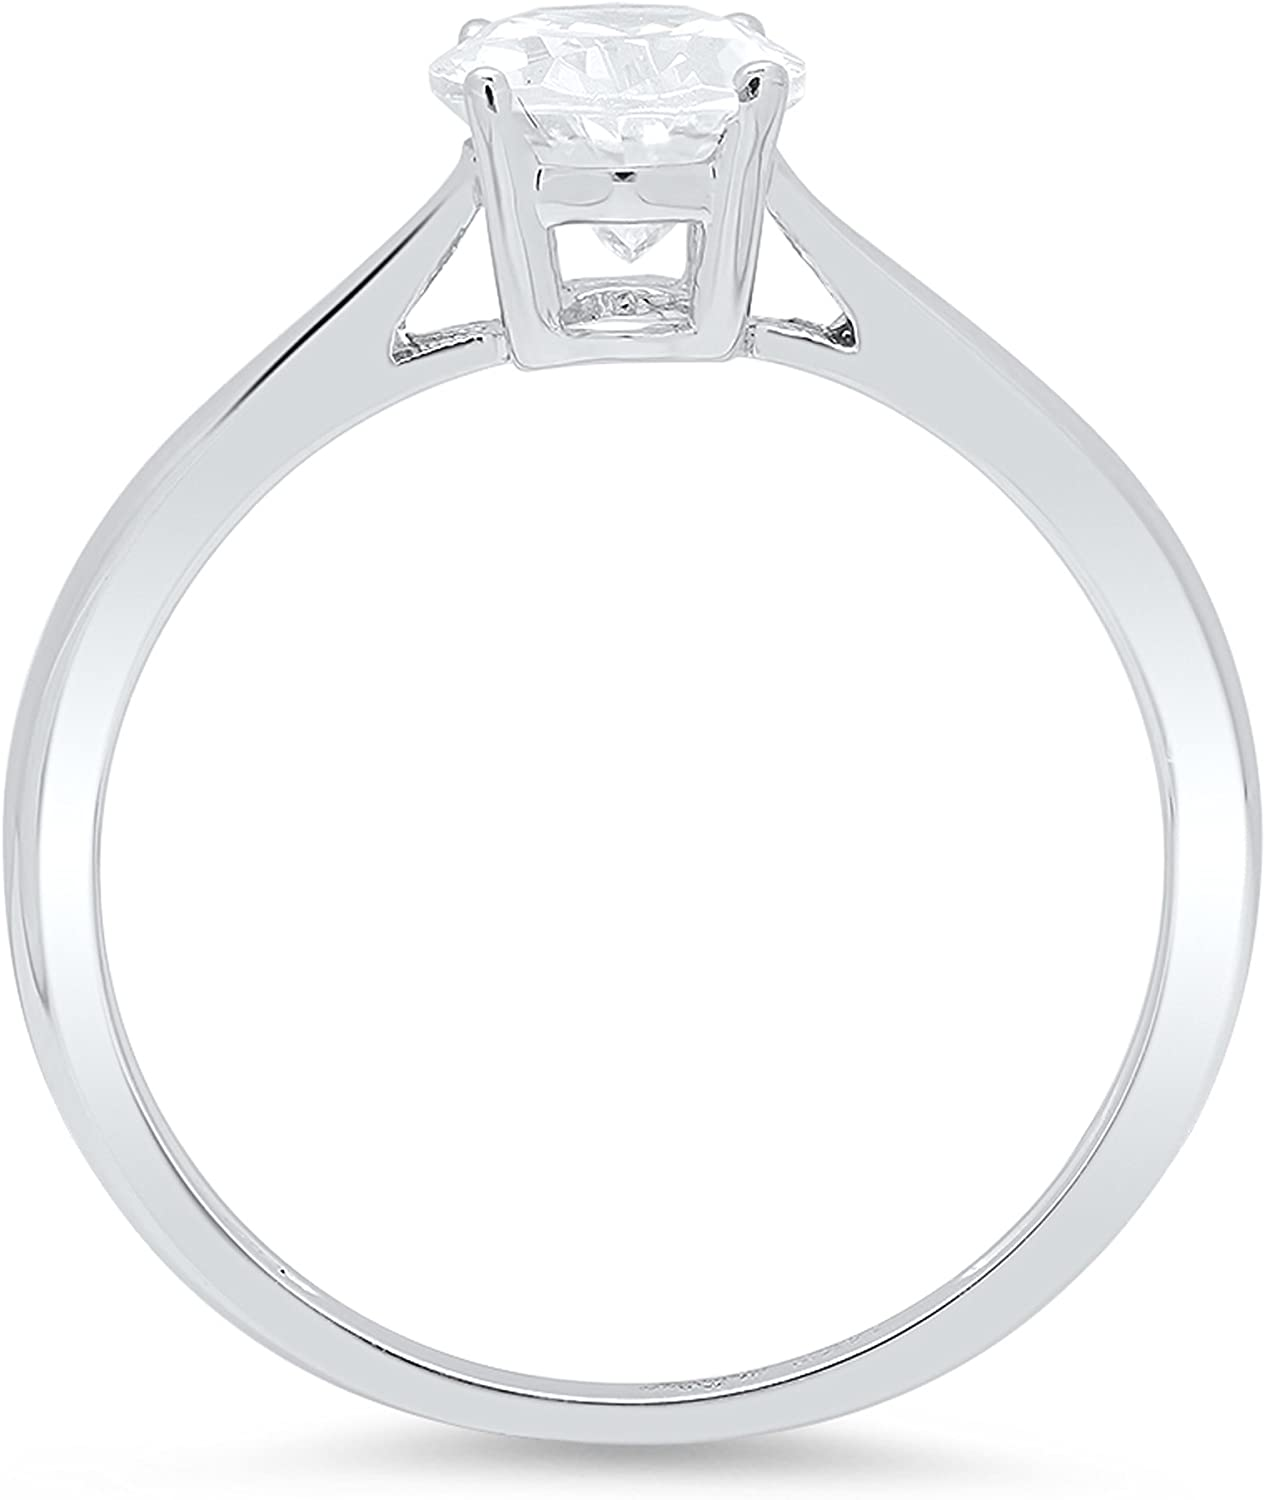 1.10 ct Brilliant Oval Cut Statement Classic Designer Solitaire Anniversary Engagement Wedding Bridal Promise Ring in Solid 14k White Gold